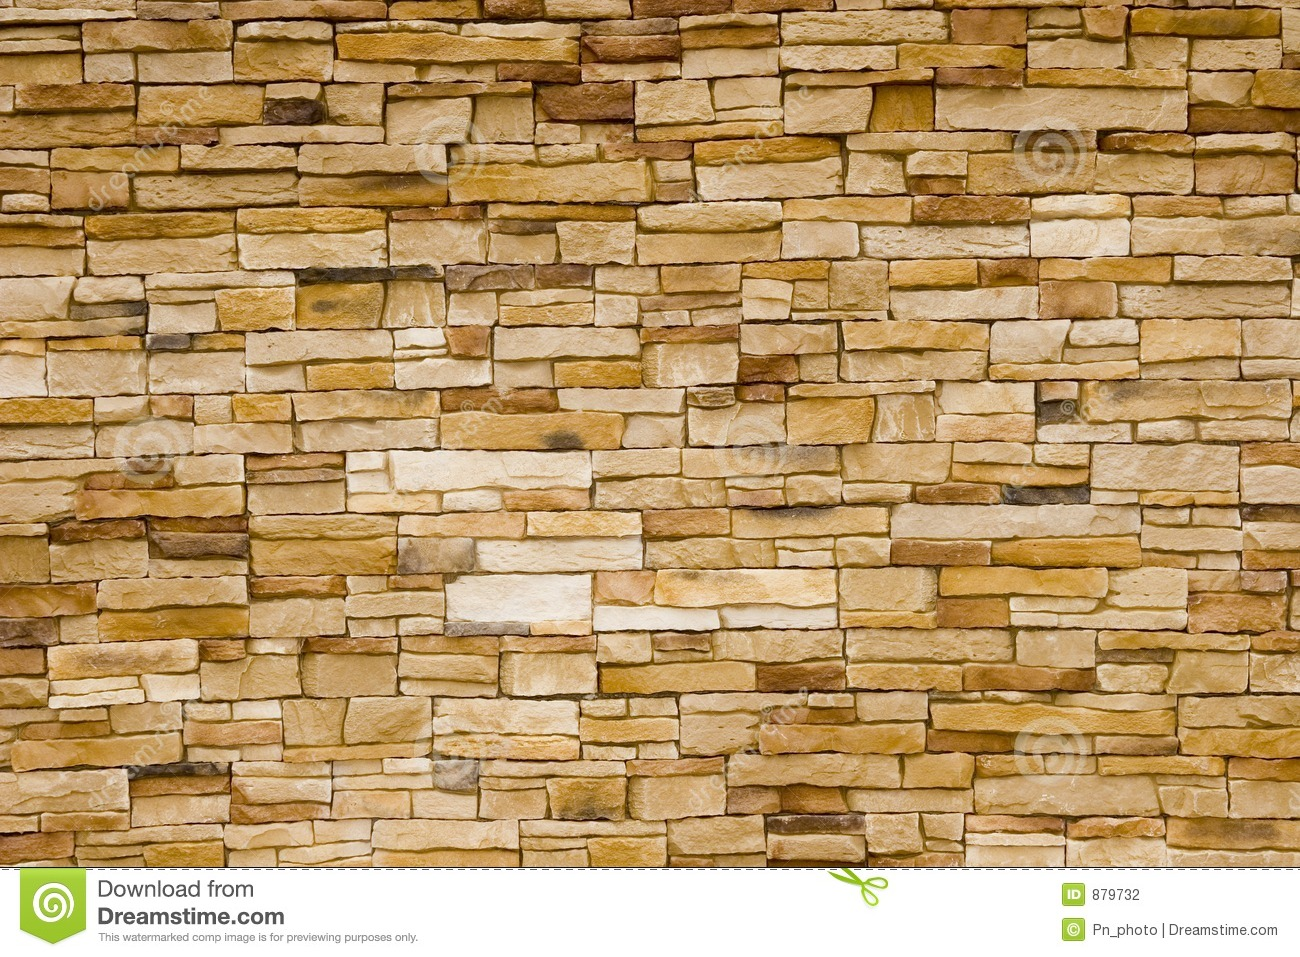 Brick wallpaper for less wallskid for Wallpaper for less